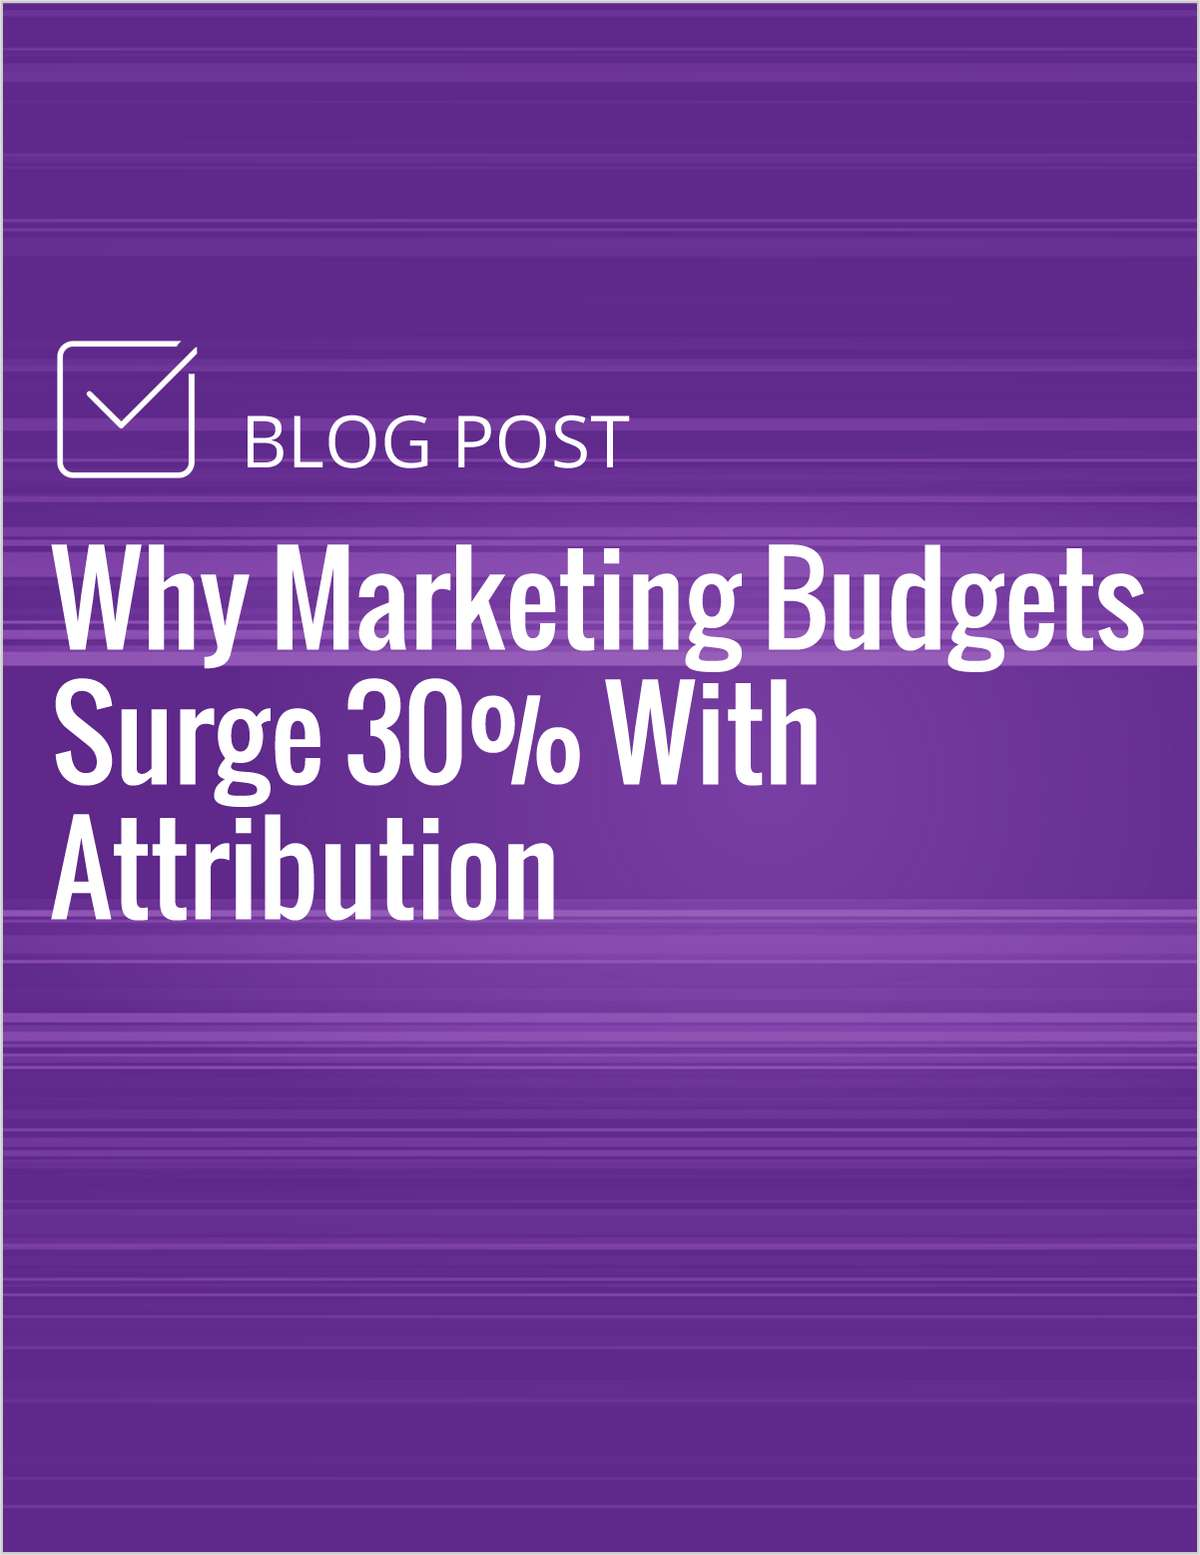 Why Marketing Budgets Surge 30% With Attribution